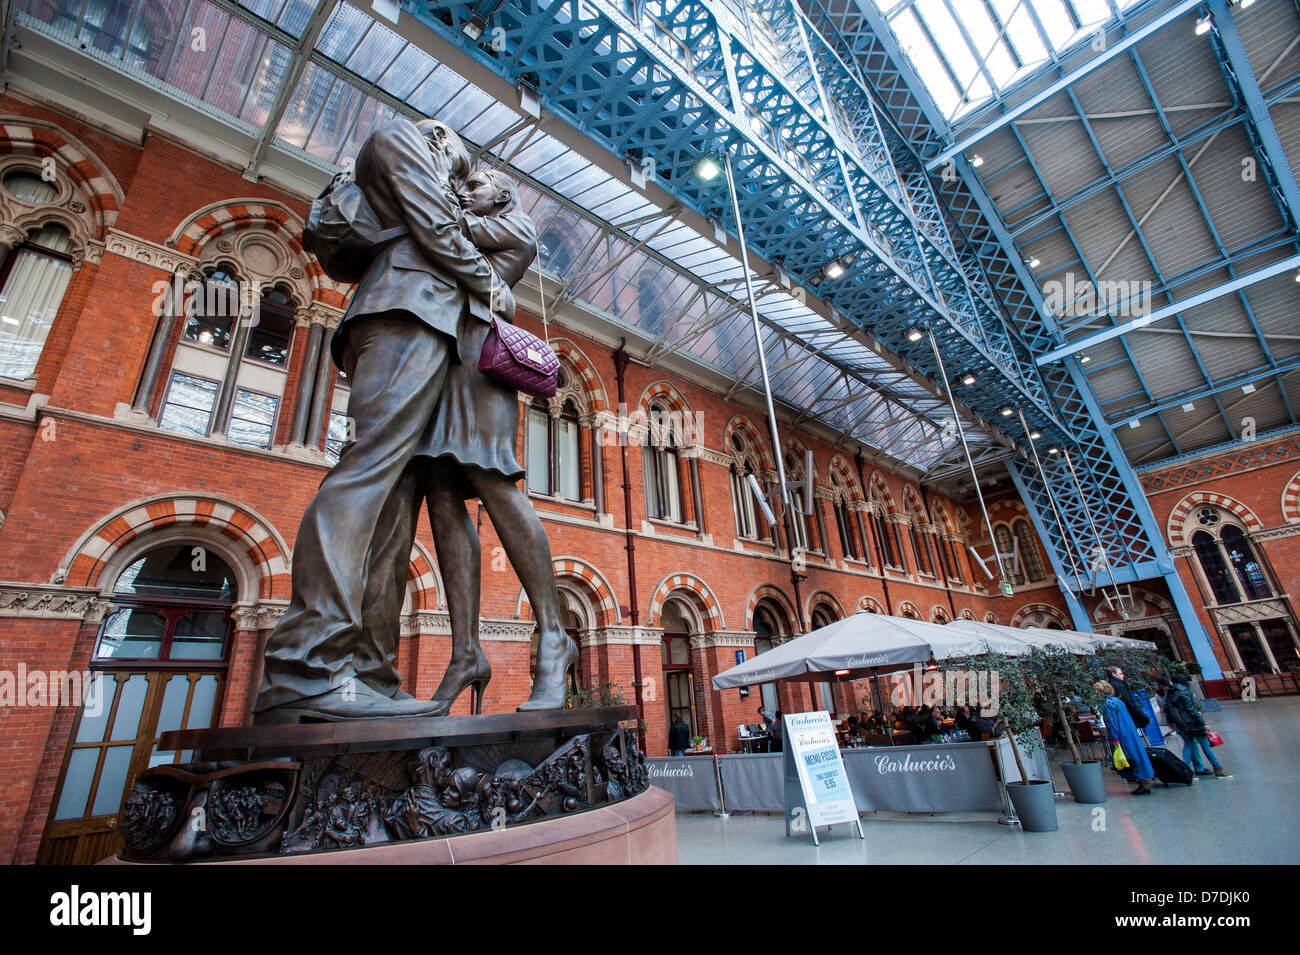 St Pancras Railway Station, Kings Cross area, London, United Kingdom - Stock Image